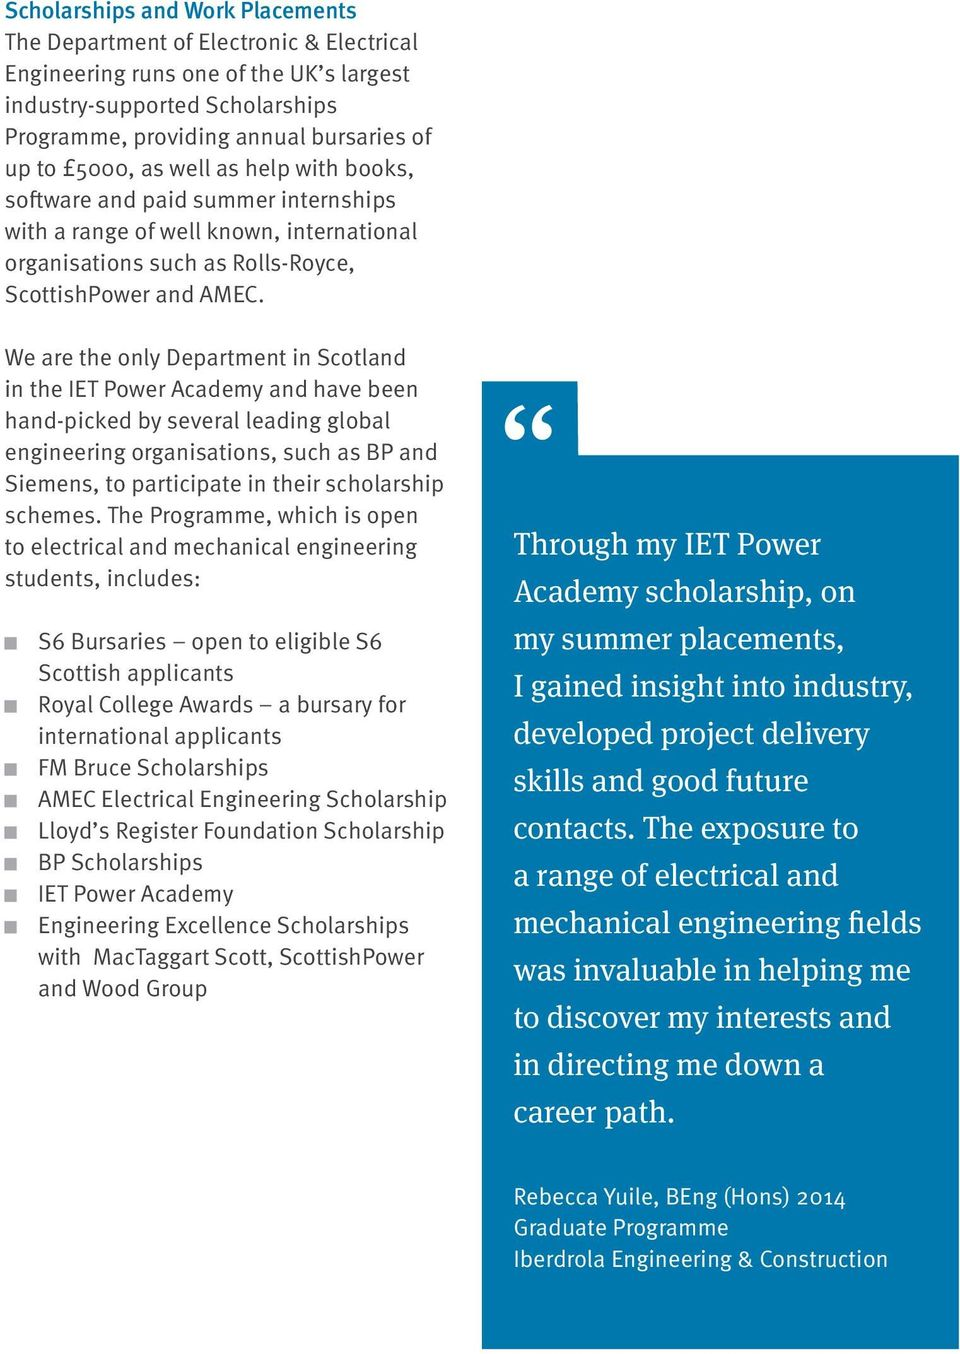 We are the only Department in Scotland in the IET Power Academy and have been hand-picked by several leading global engineering organisations, such as BP and Siemens, to participate in their